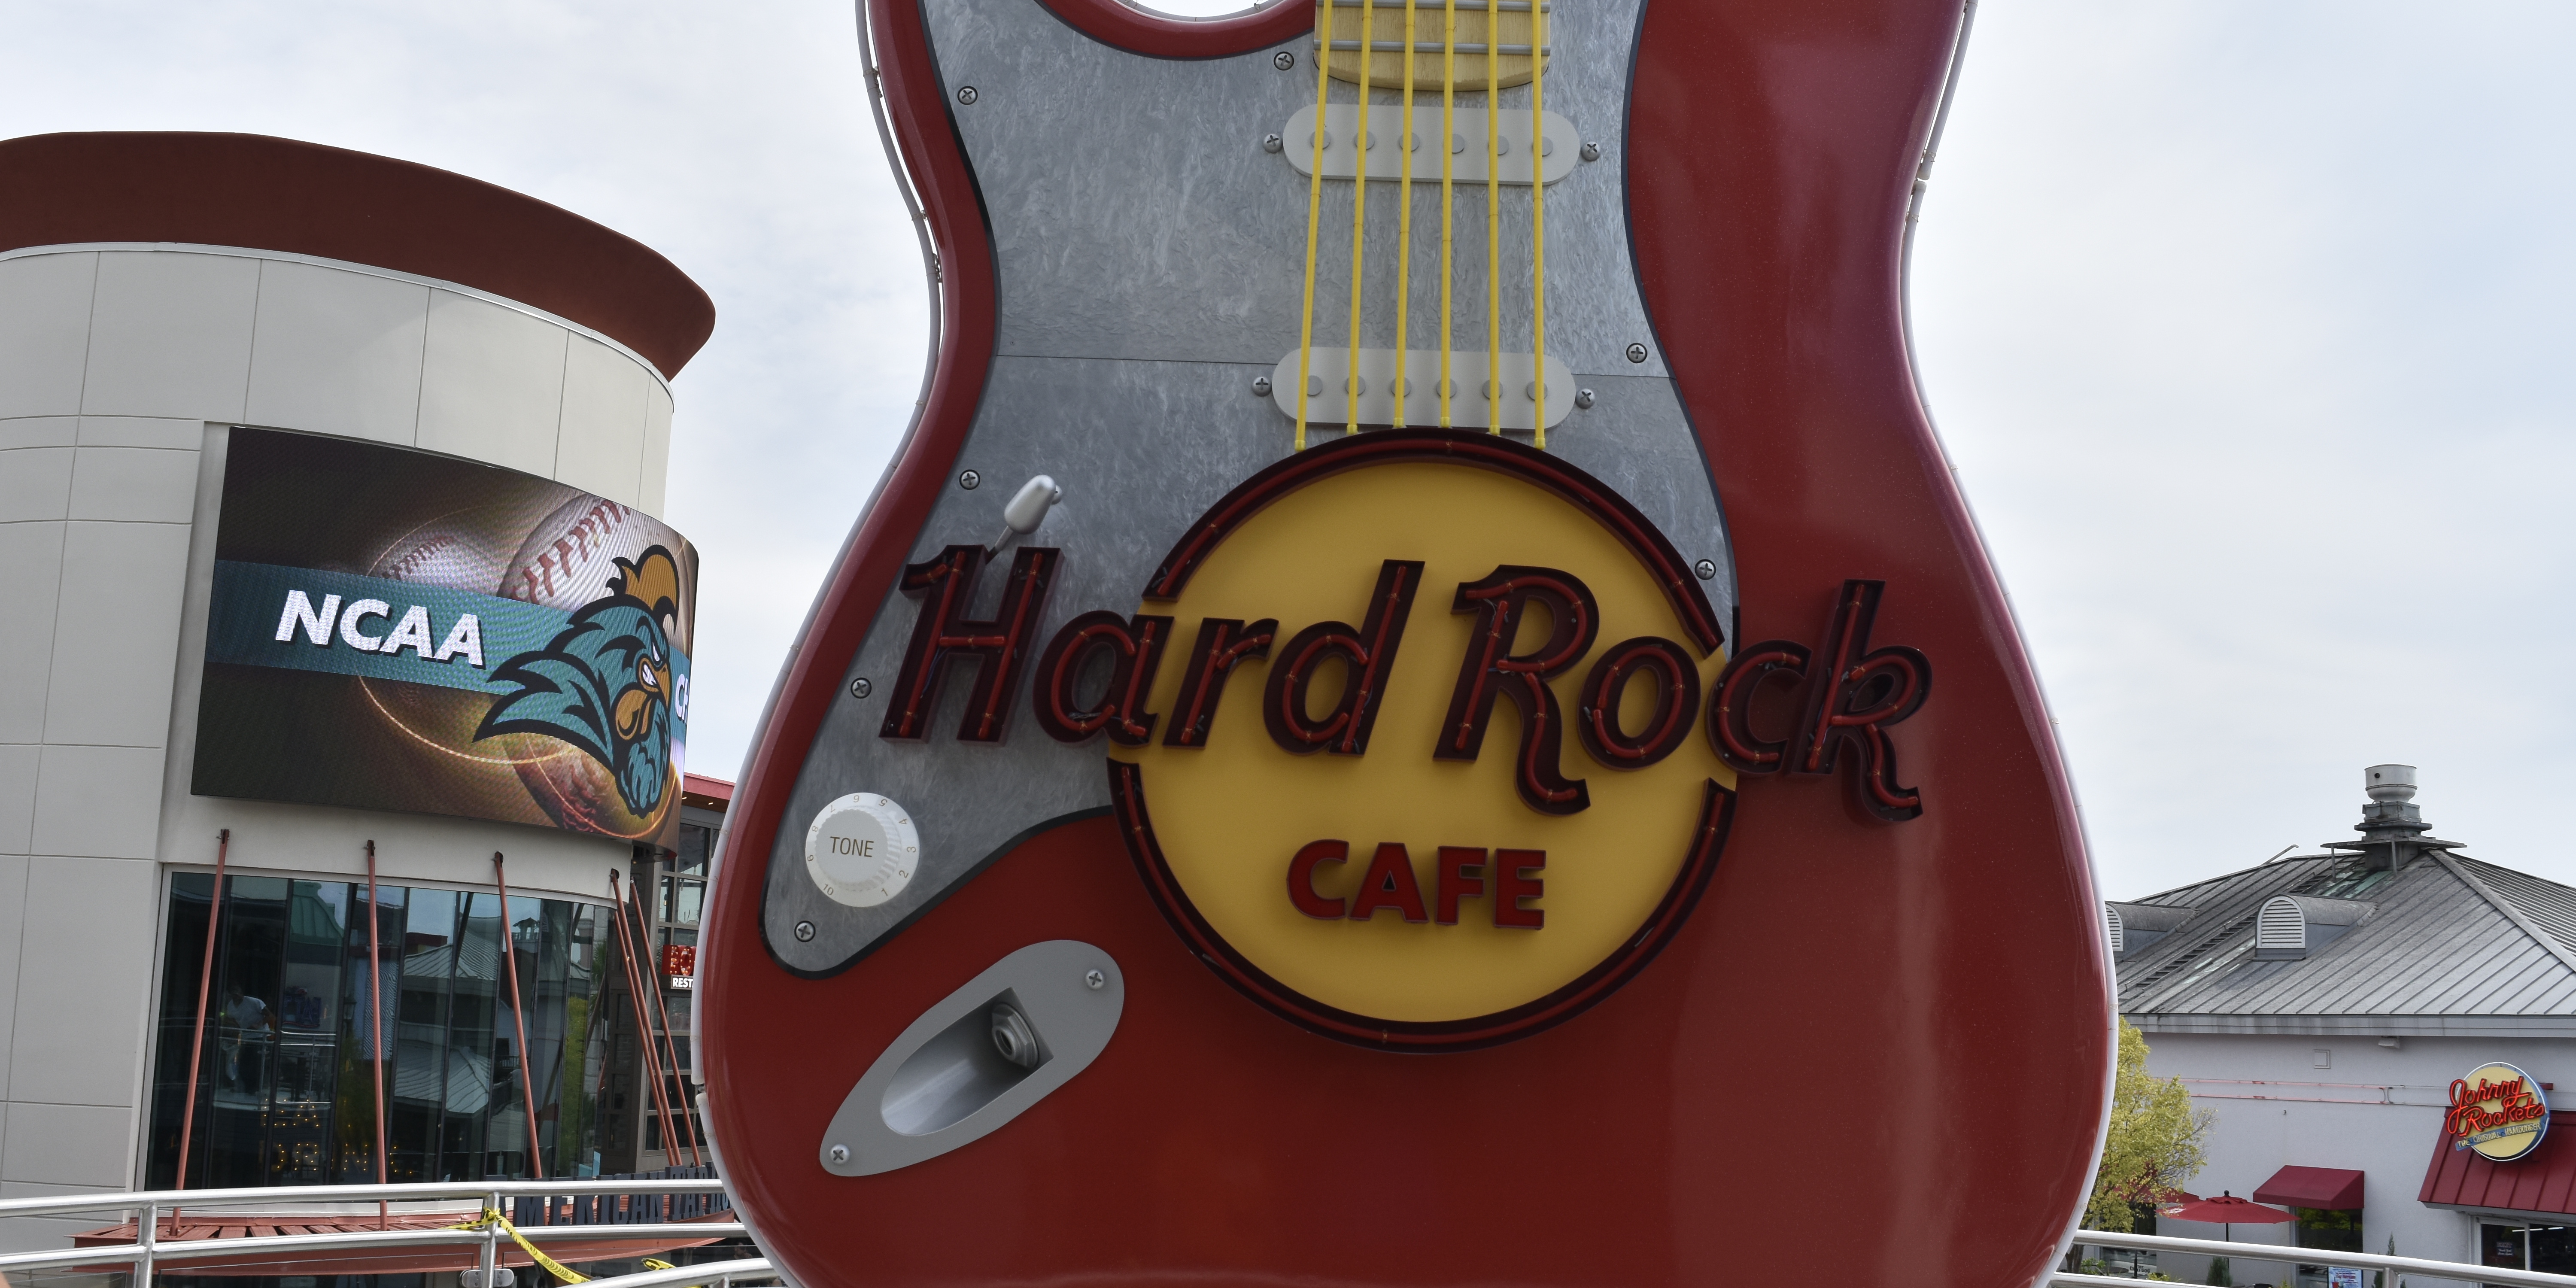 Hard Rock clipart sea rock The for Café happening Broadway